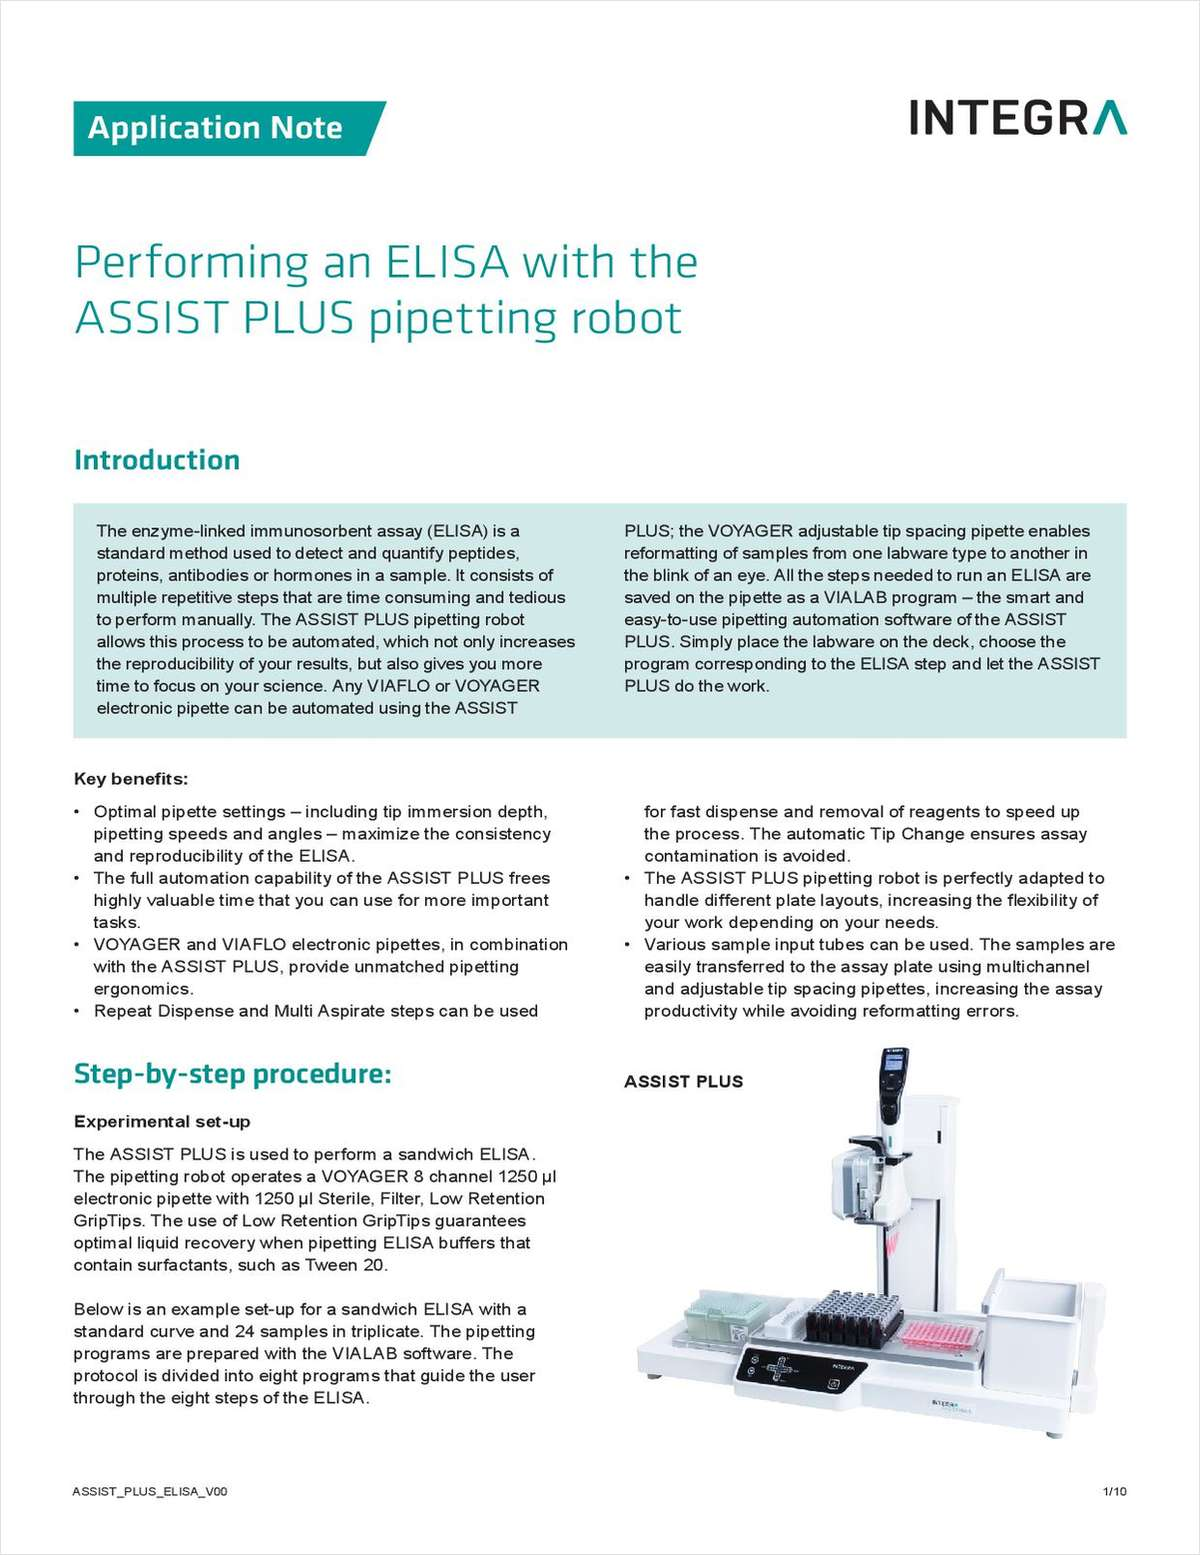 Performing an ELISA with the ASSIST PLUS Pipetting Robot